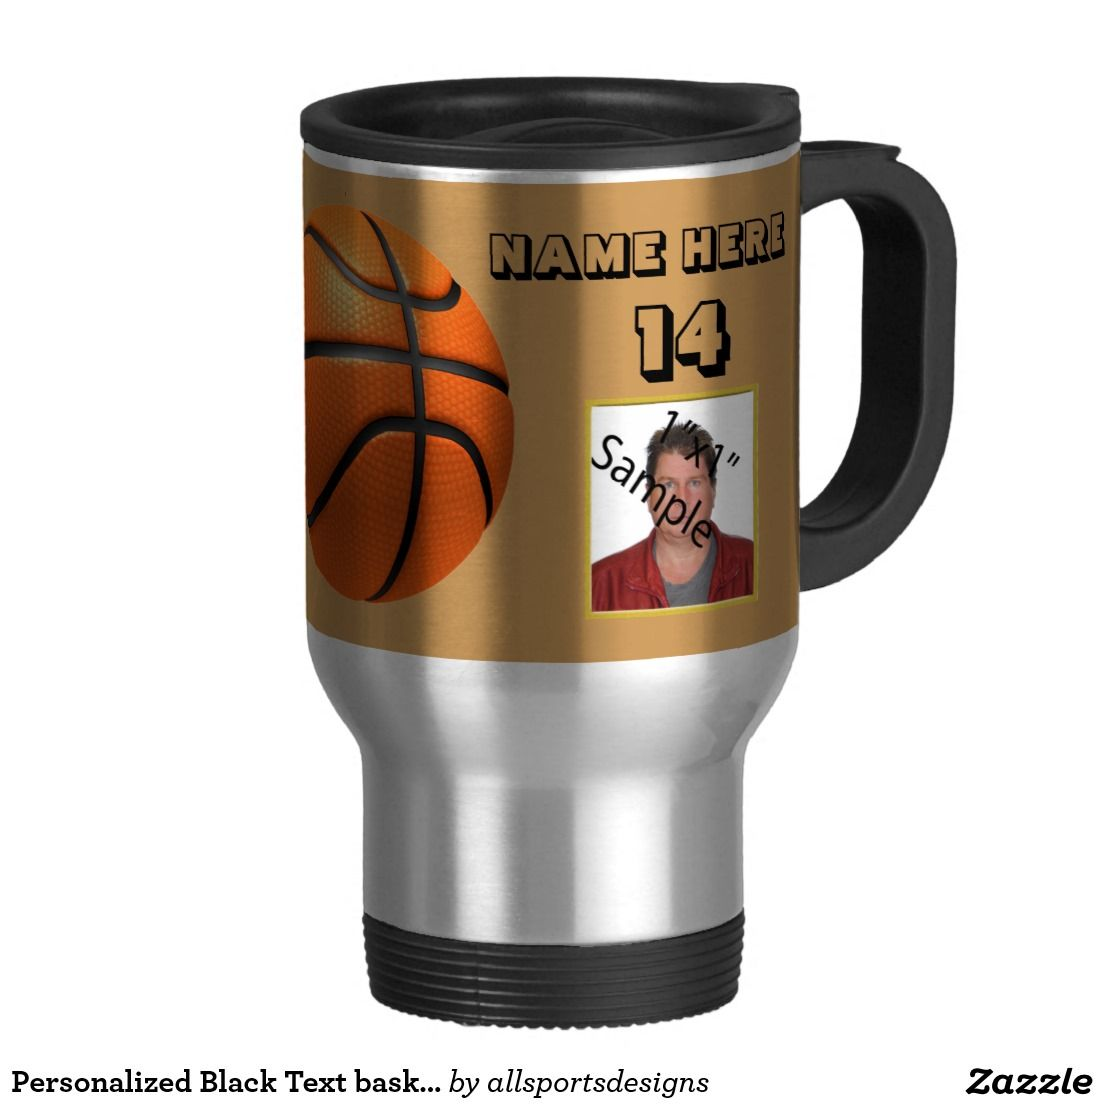 Personalized Black Text basketball Photo Tumbler 15 Oz Stainless Steel Travel Mug Personalized basketball black text photo tumbler with Name of player's, Photo of the basketball player, Name of team, Number of jersey and the Year on it. black and gold goblet. Background color can be change to team color. The black text can be changed as well. This mug is great for a gift.Delete any or all text. IMPORTANT Personalize each basketball picture cup,ONE at a Time, ADD that mug to the CART